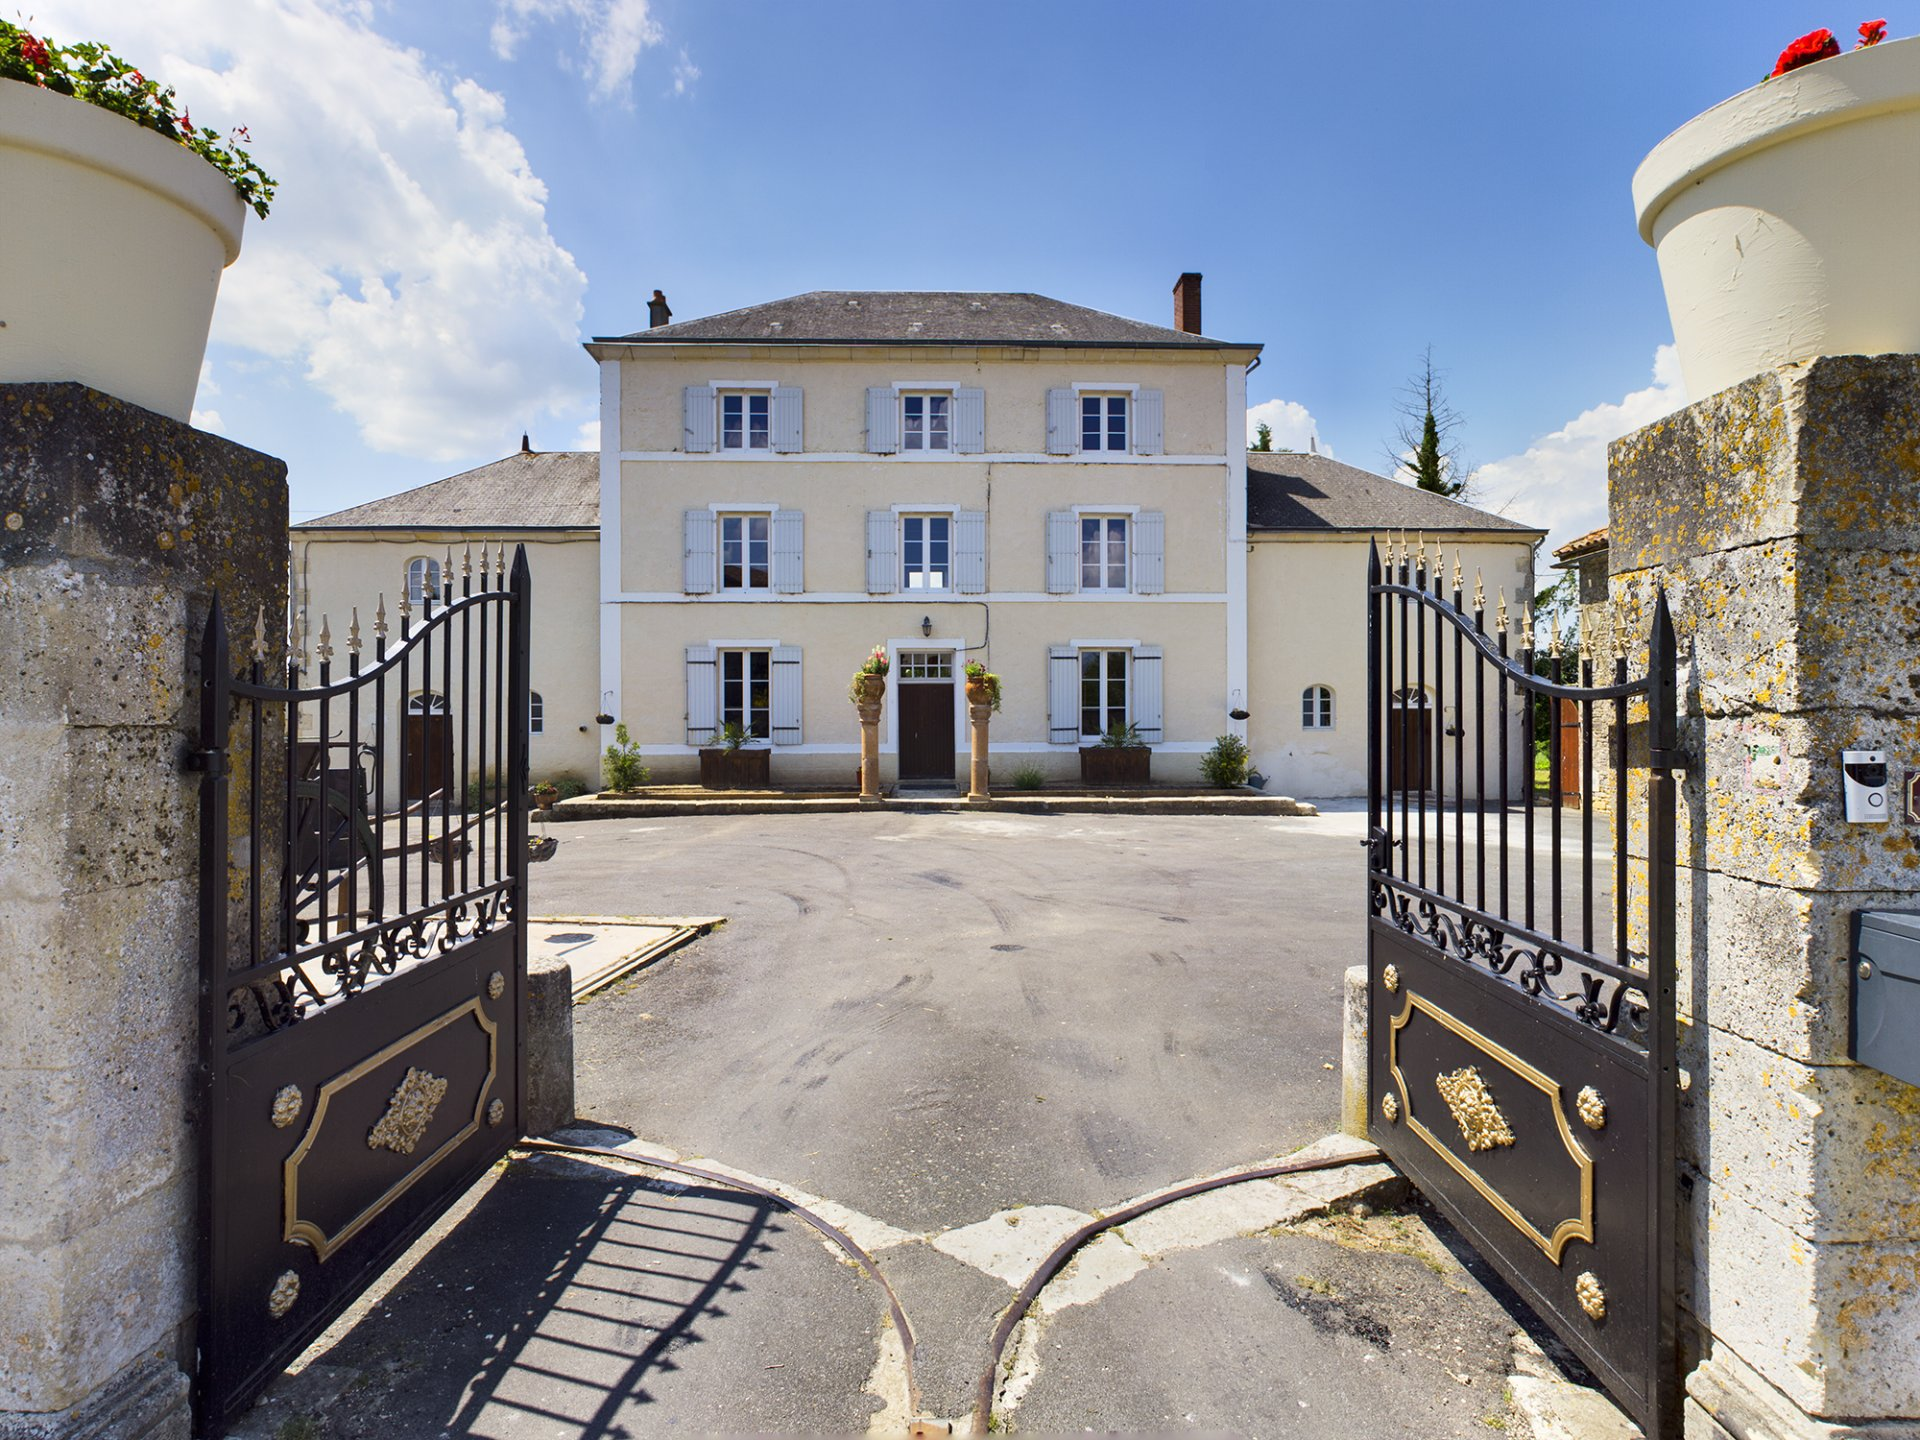 An opportunity to own a unique fully refurbished property in rural France